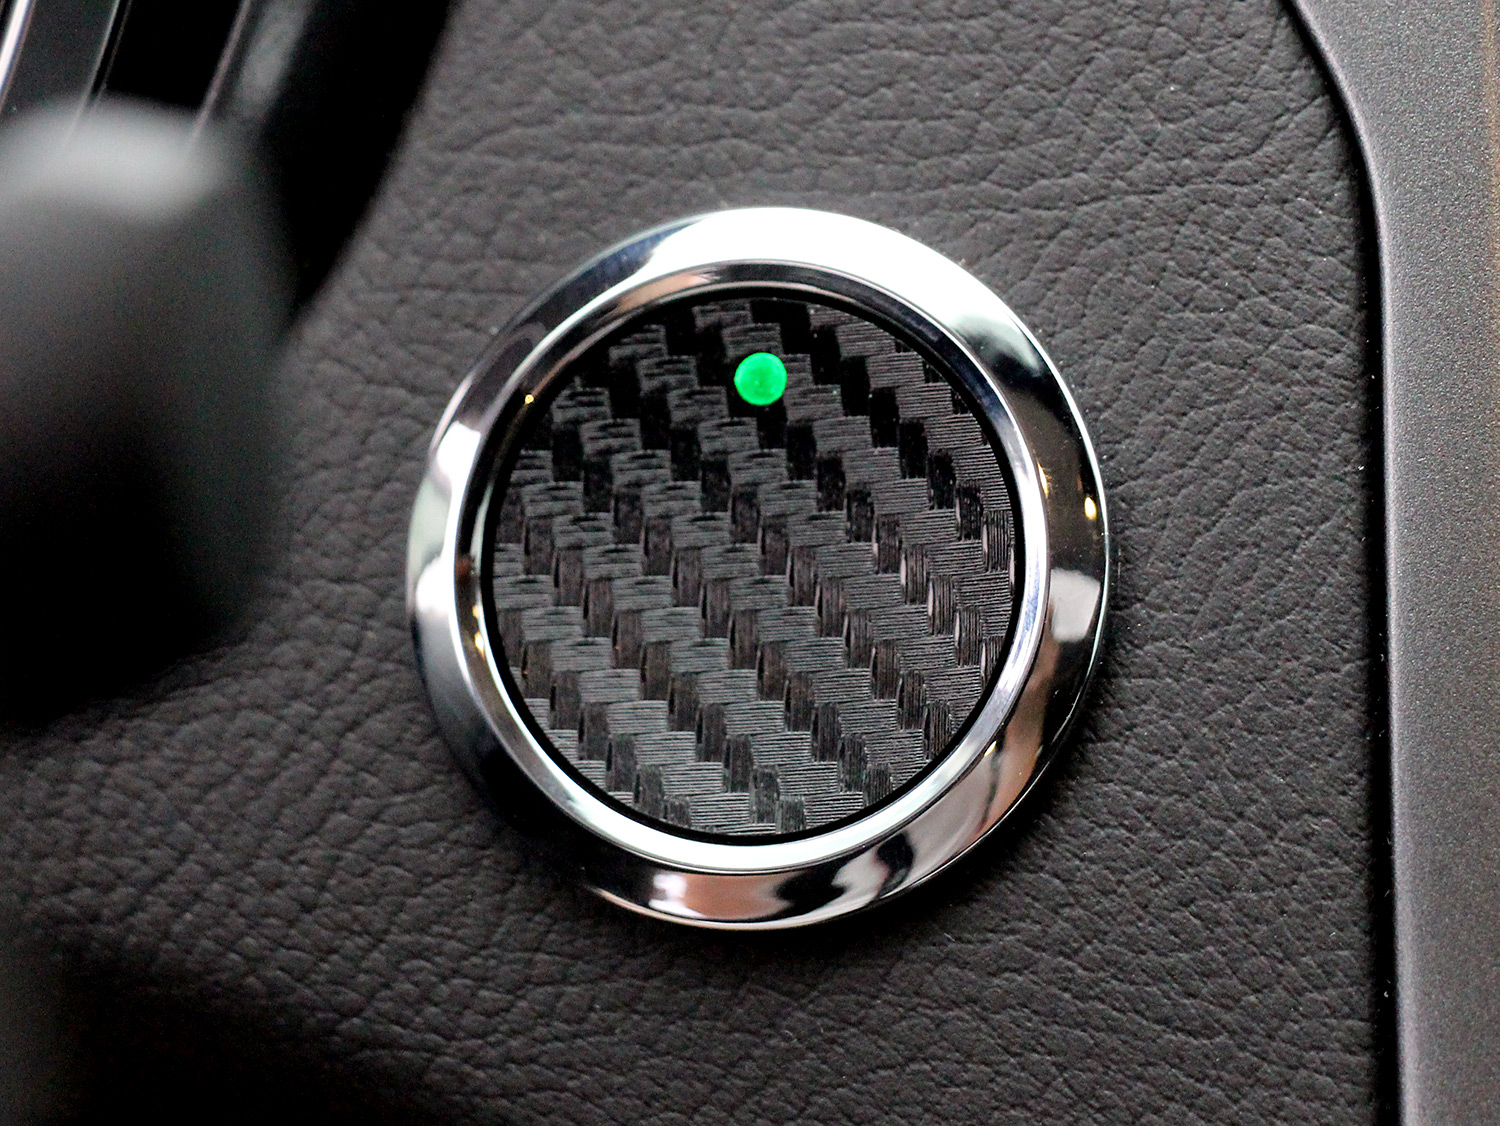 Can Someone Measure Their Push Start Button For Me